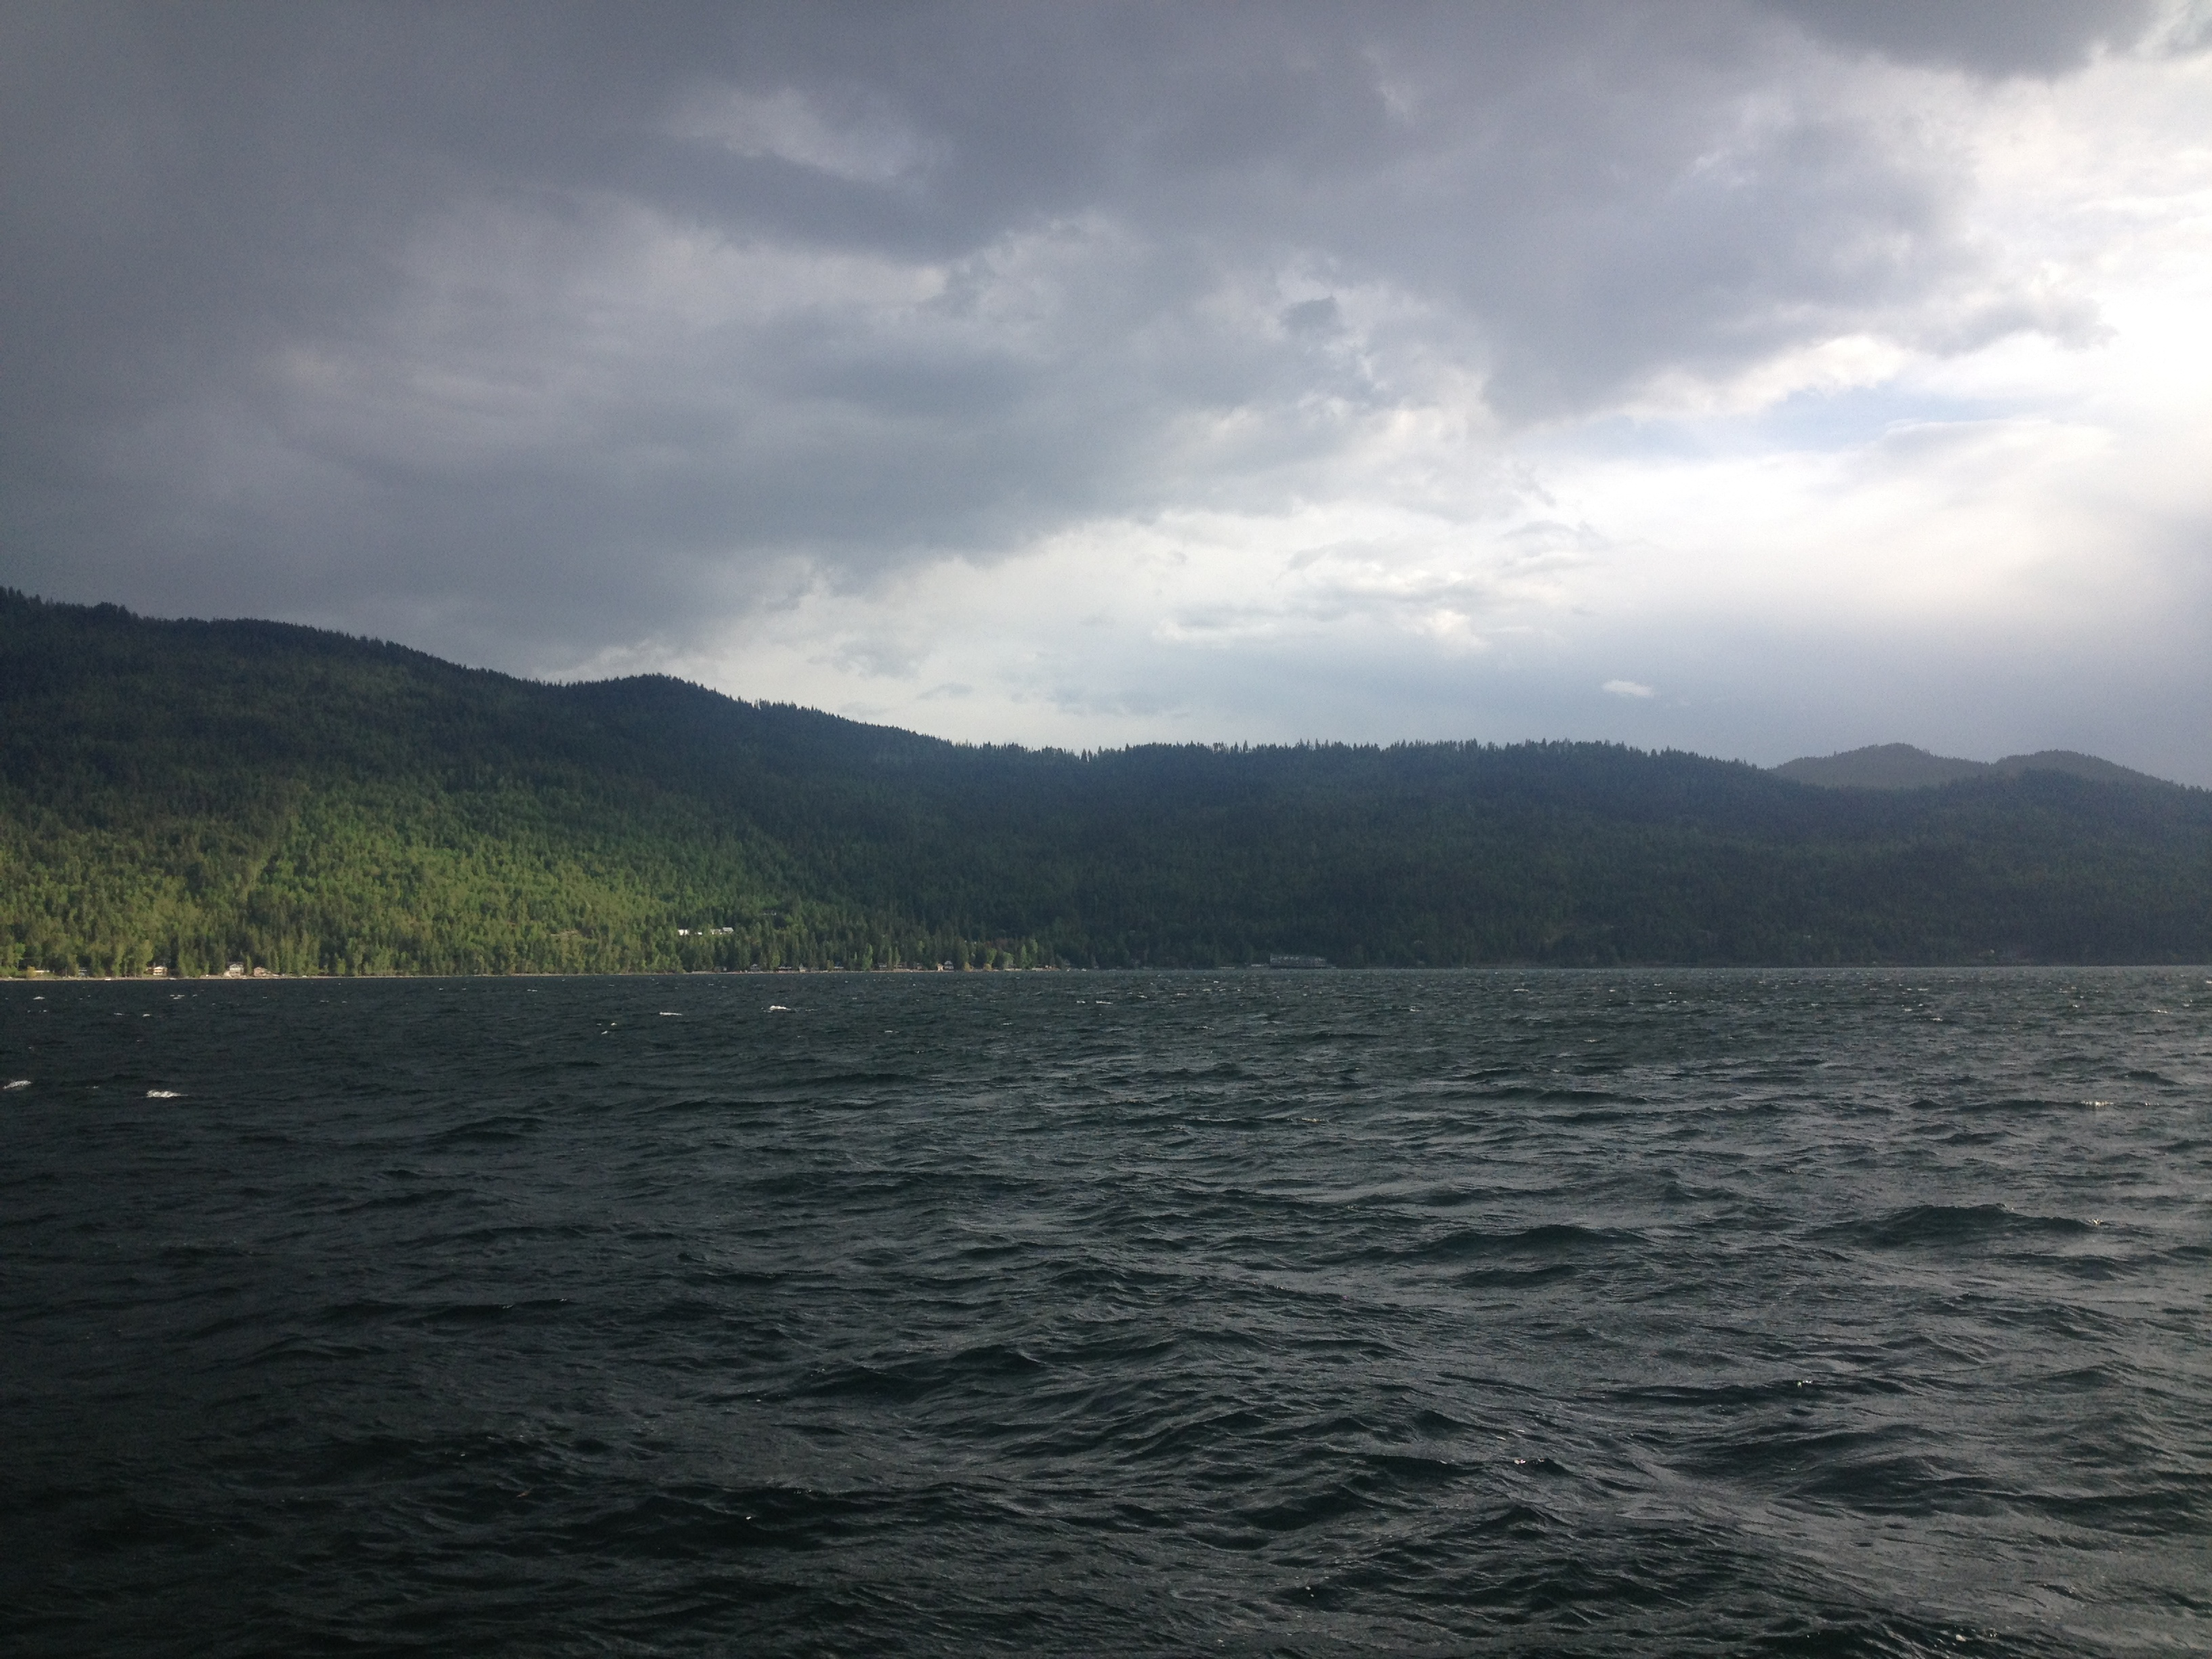 Sun shines through the storm clouds on the Shuswap